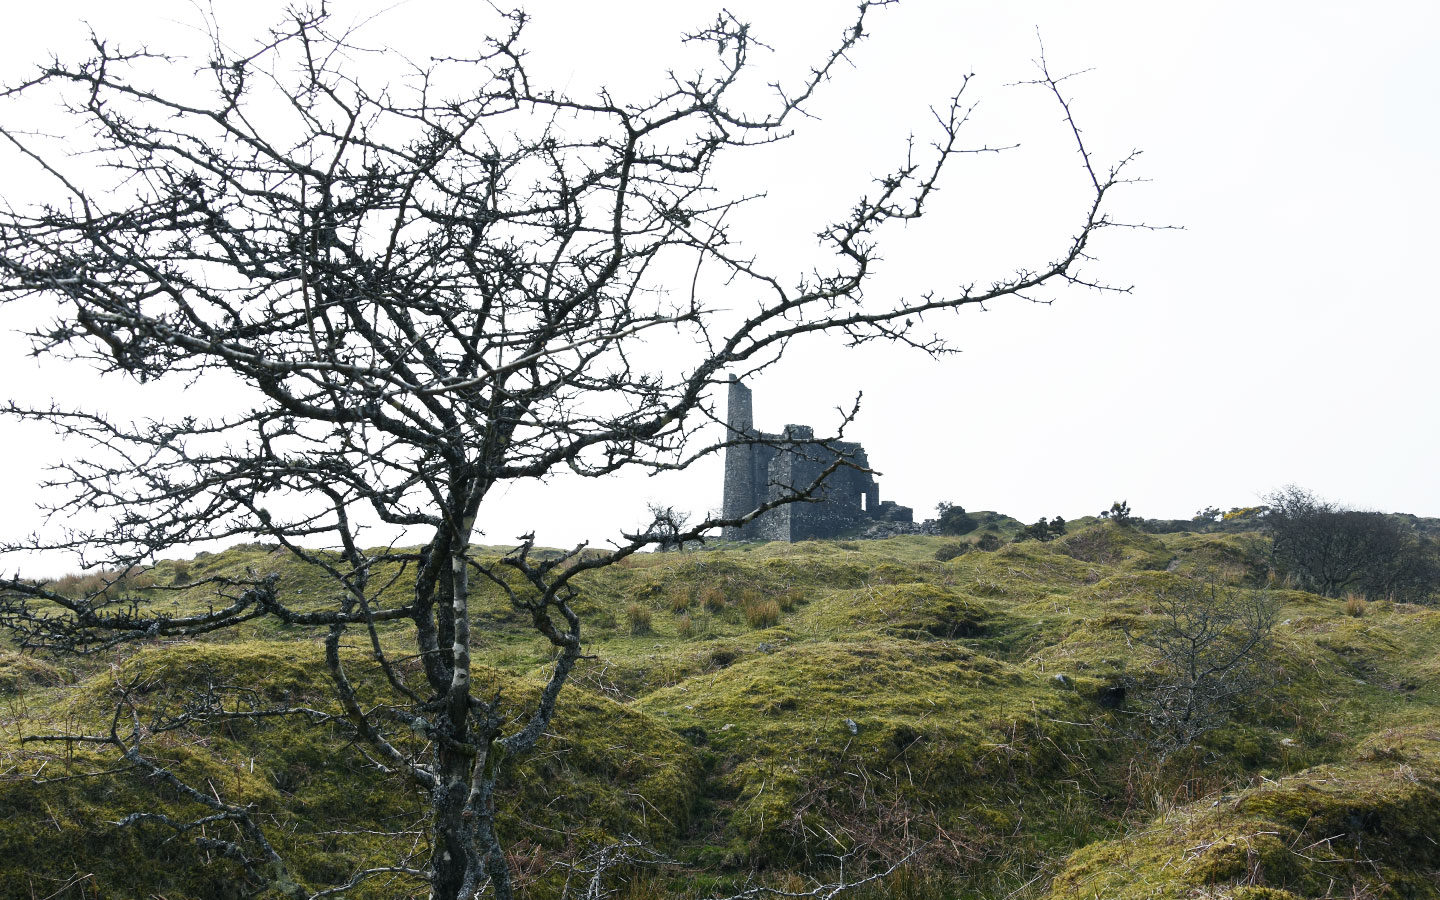 thorny tree in front of old engine house on bodmin moor in cornwall